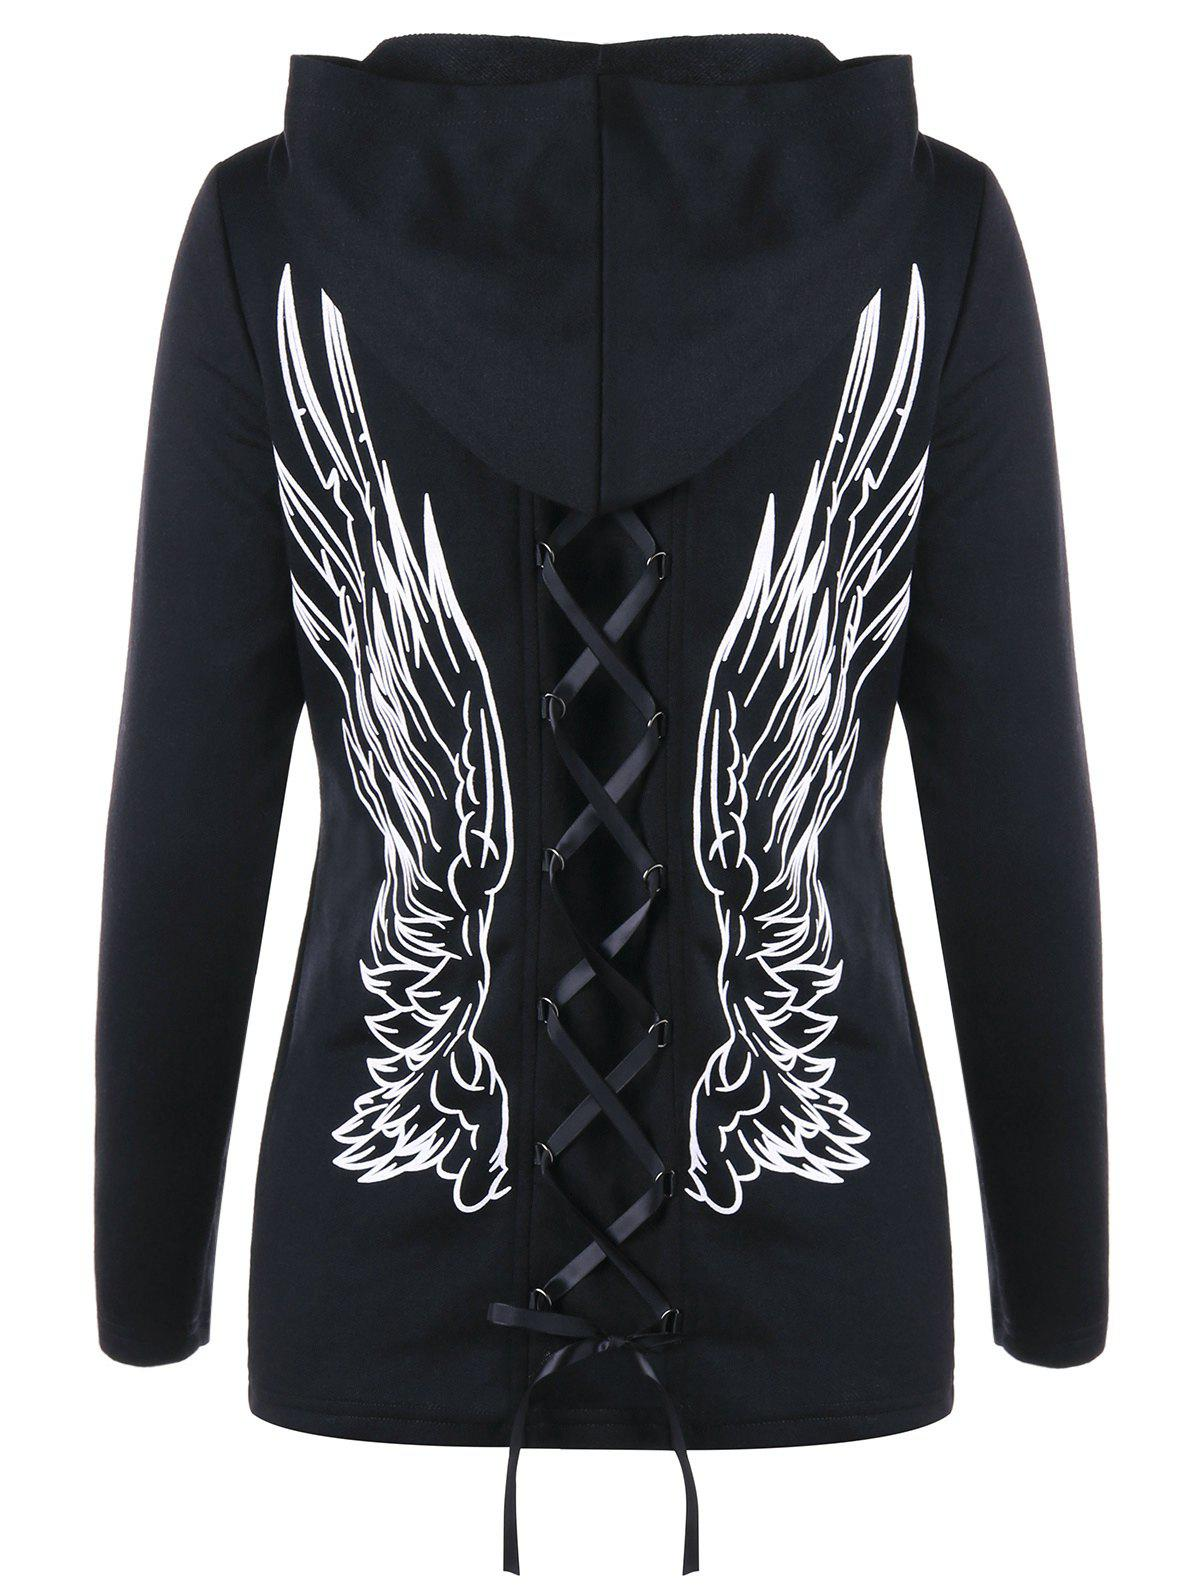 Zip Up Wings Print Double Lace-up HoodieWOMEN<br><br>Size: L; Color: BLACK; Material: Polyester; Shirt Length: Regular; Sleeve Length: Full; Style: Fashion; Pattern Style: Others; Season: Fall,Spring; Weight: 0.4810kg; Package Contents: 1 x Hoodie;